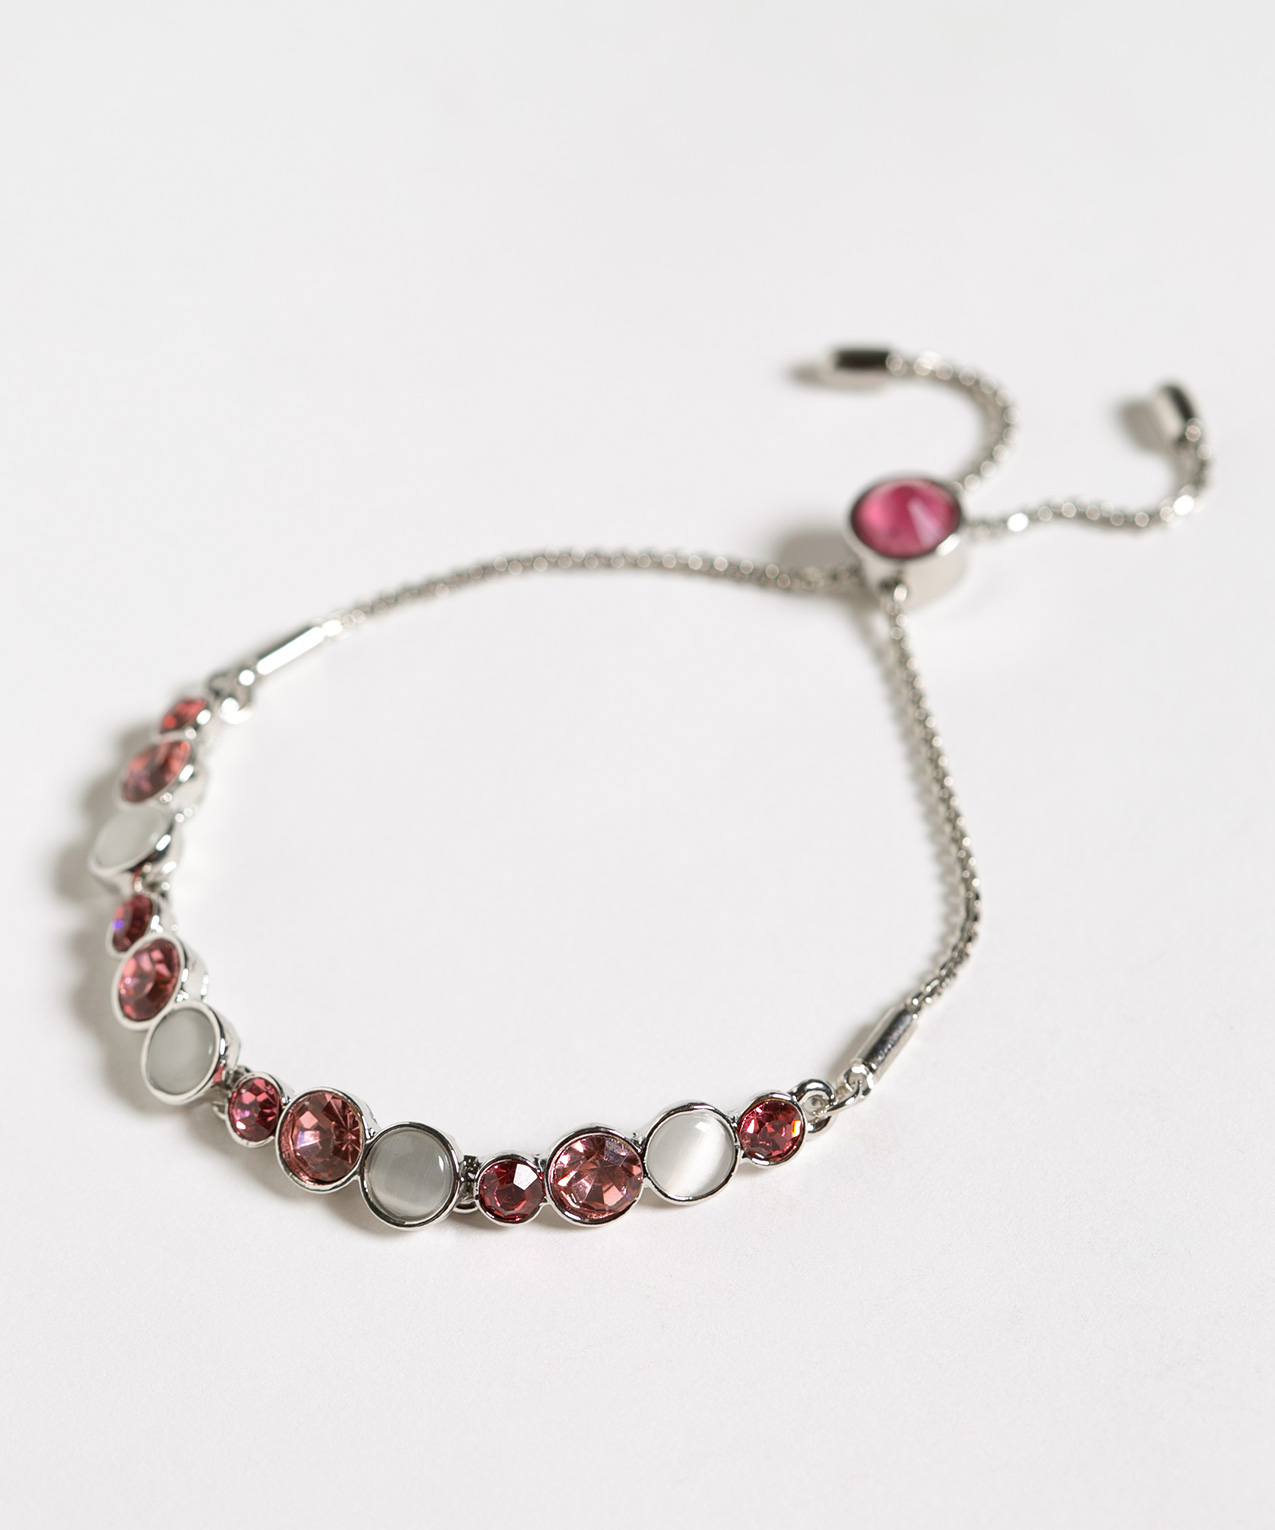 Rose Crystal Adjustable Bracelet, Rose/White/Silver, hi-res